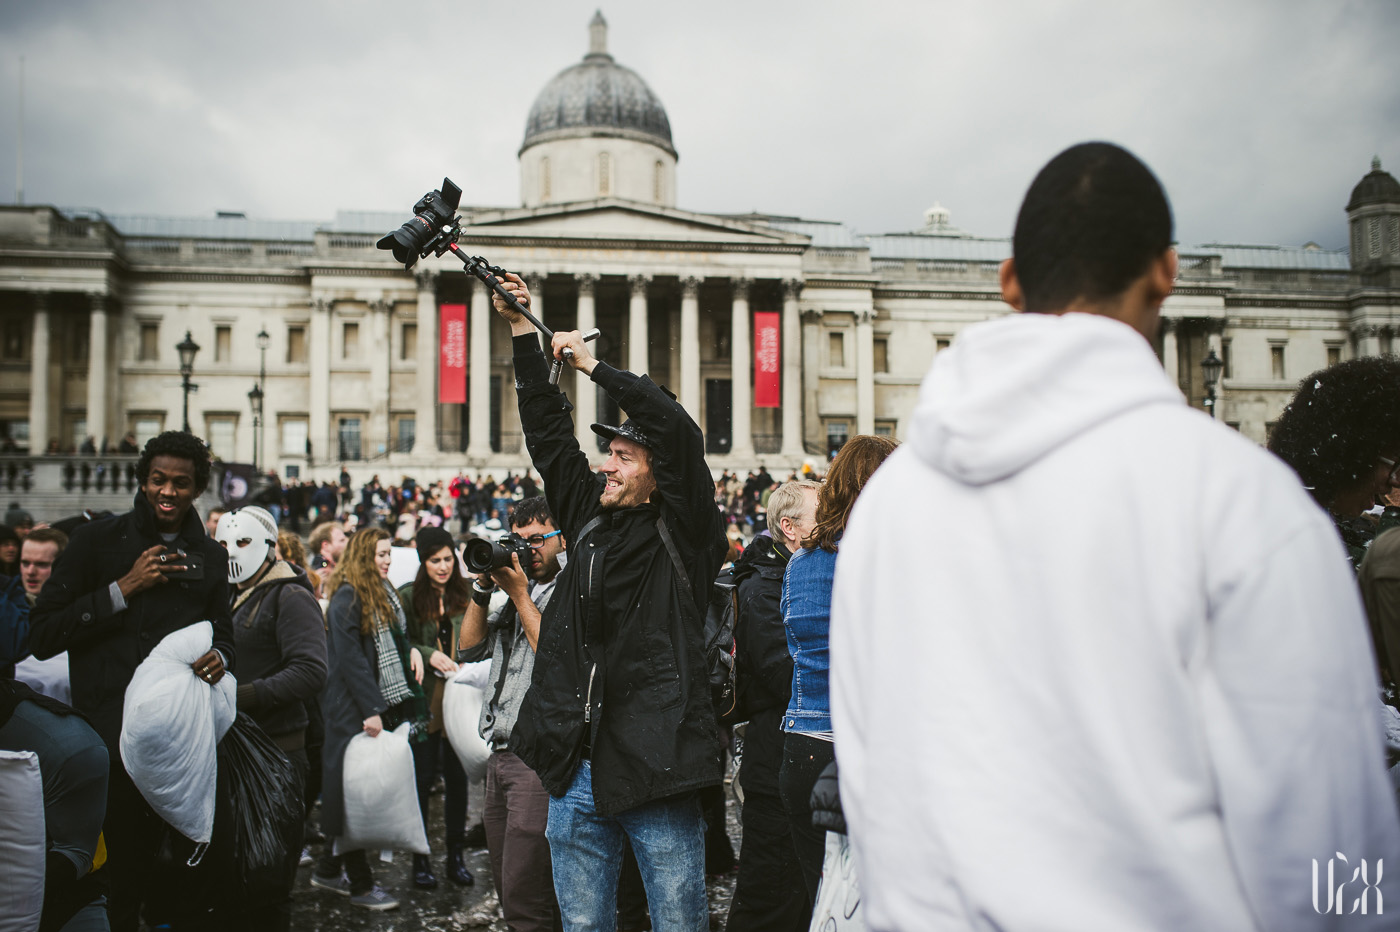 International Pillow Fight Day In London 2015 Street Photography Pagalviu Musis 18